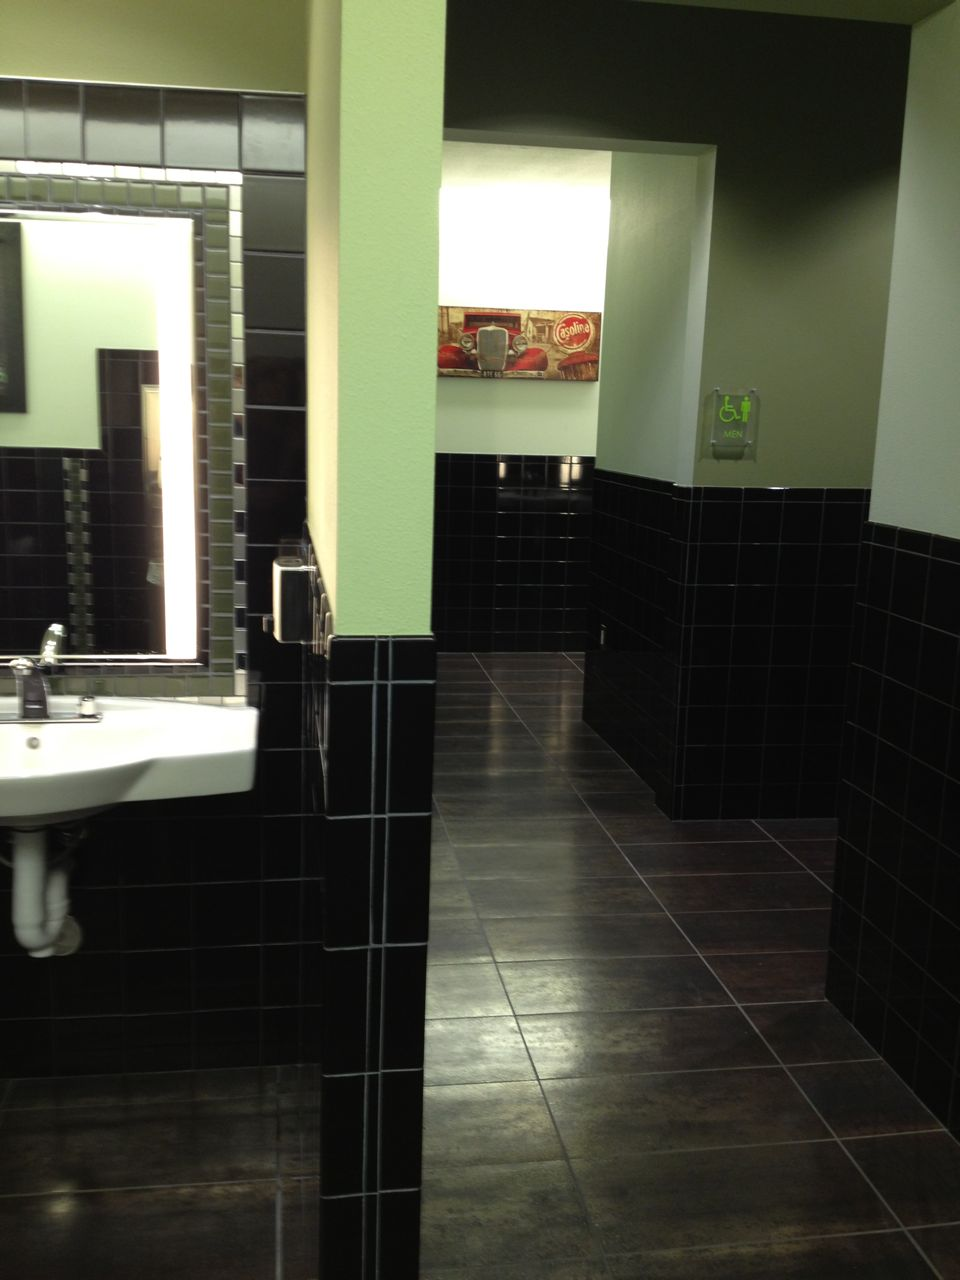 Nicely remodeled bathrooms across the lobby